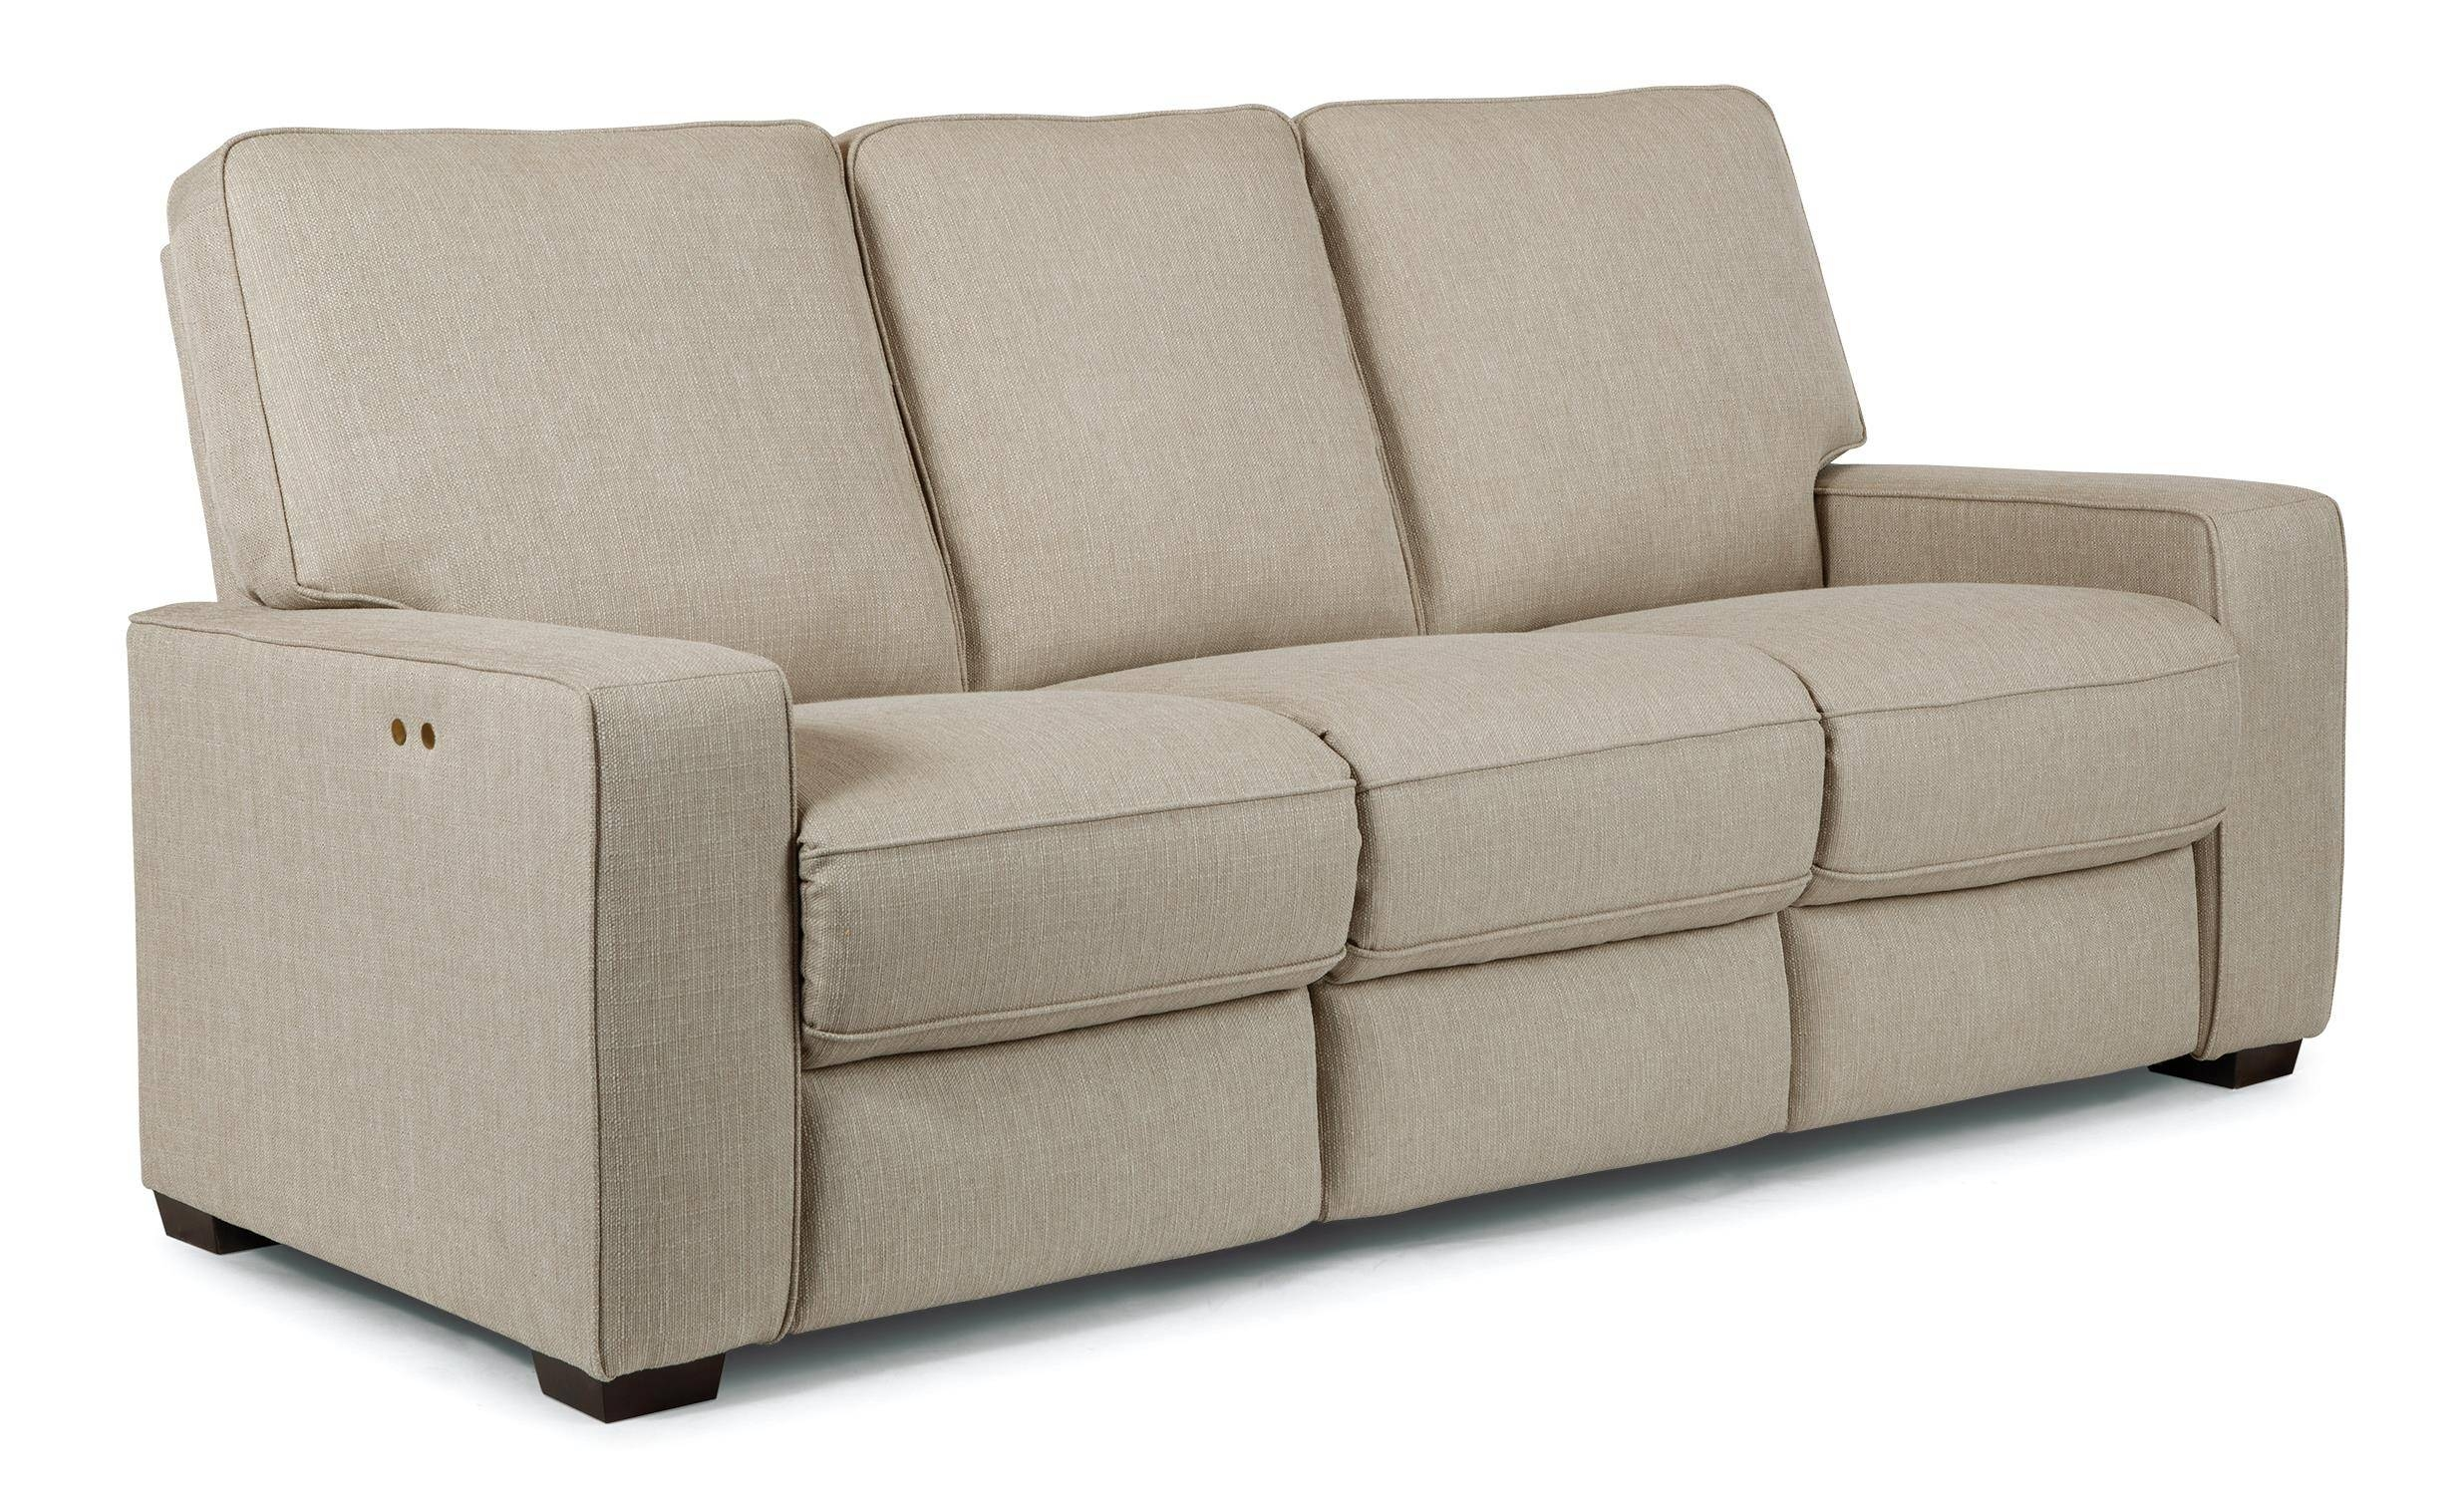 Sofas Center : Modern Recliningas And Loveseats Leathera with regard to Modern Reclining Leather Sofas (Image 28 of 30)